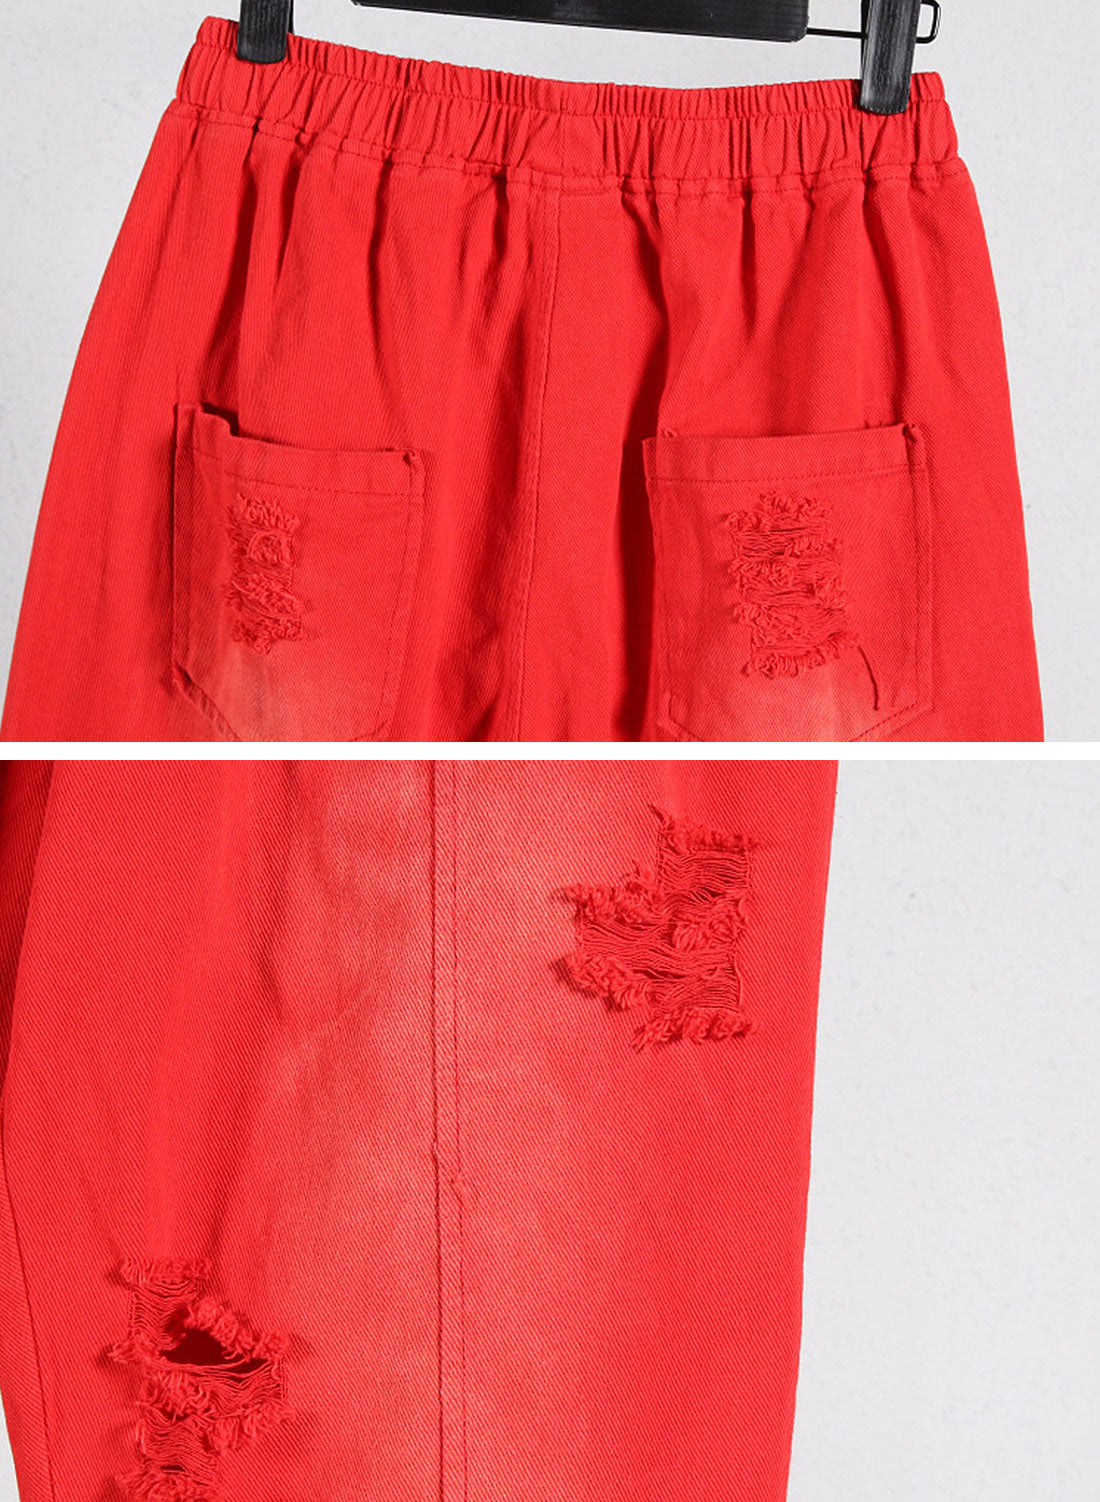 Solid color Ripped Trouser Pants Details 1